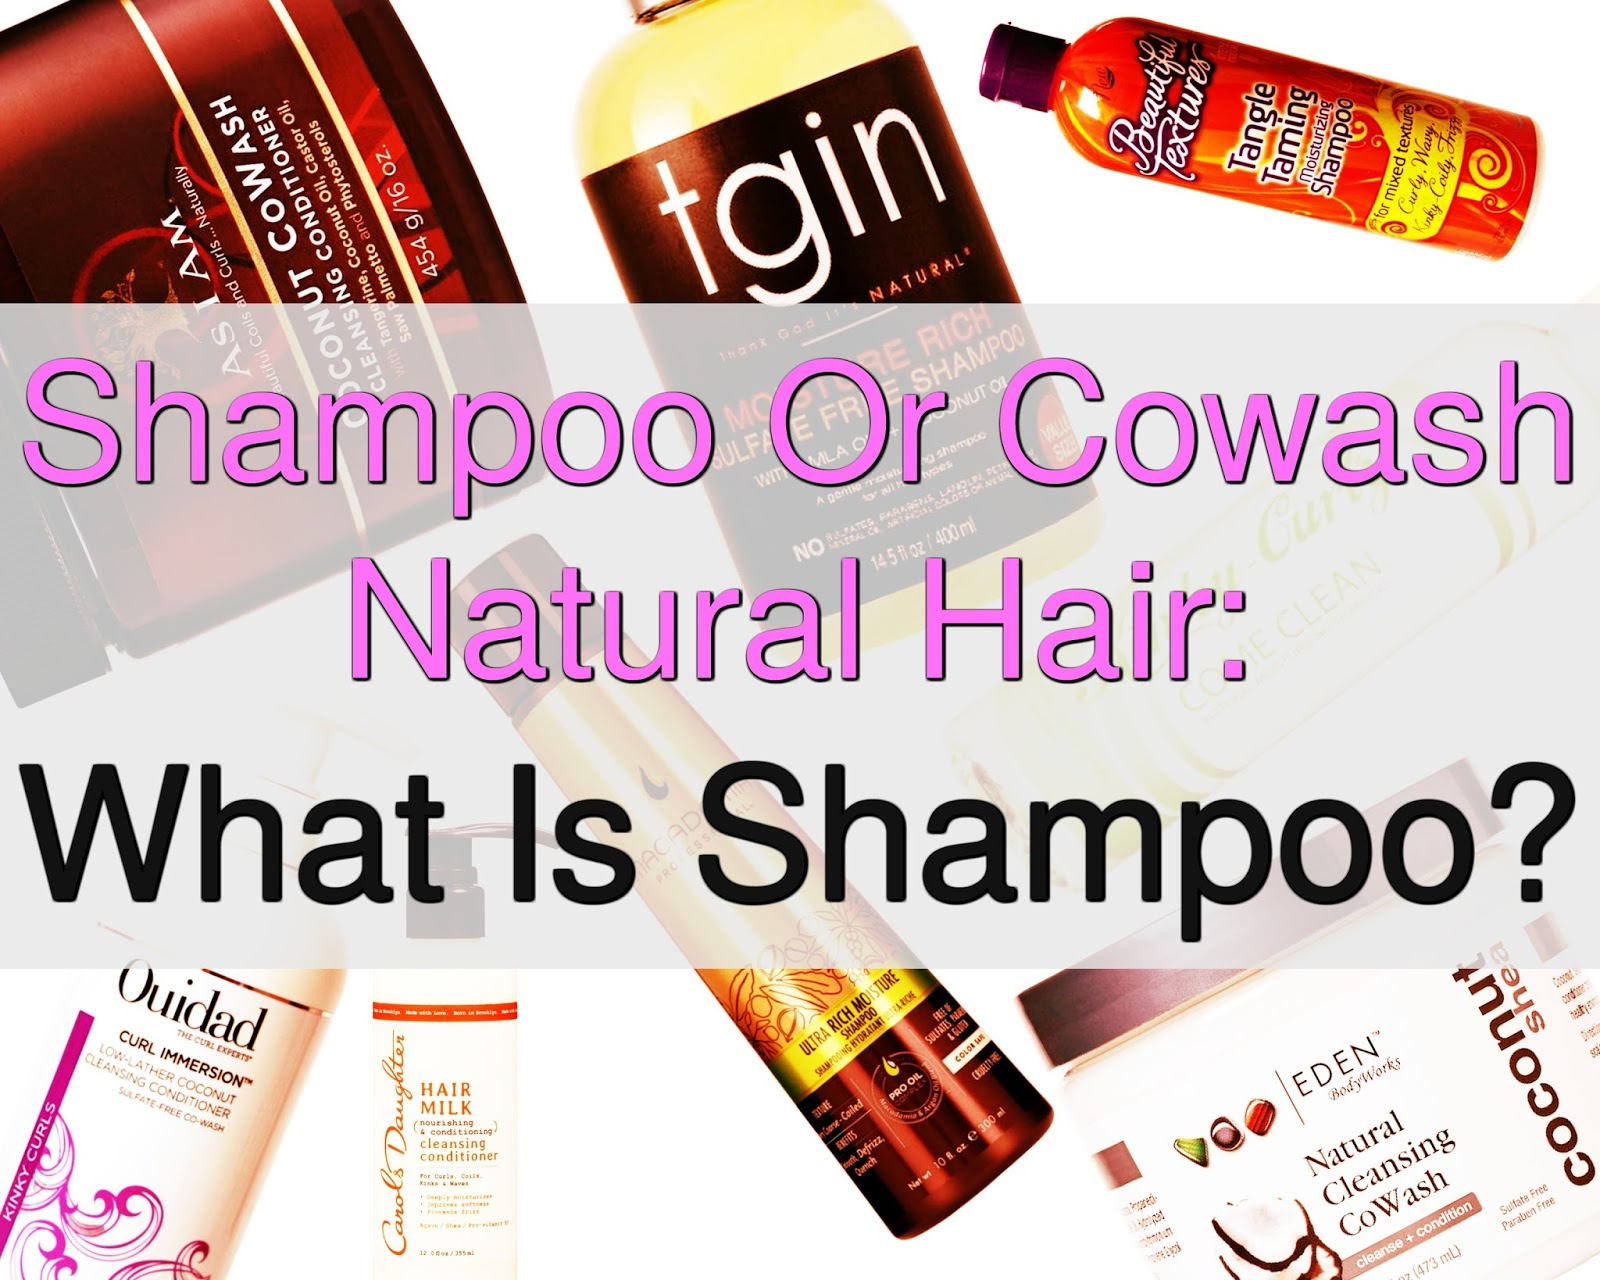 Co Wash or Shampoo is better for natural hair? Have you wondered about this as you embark on your natural hair journey? We explain what you need and why.